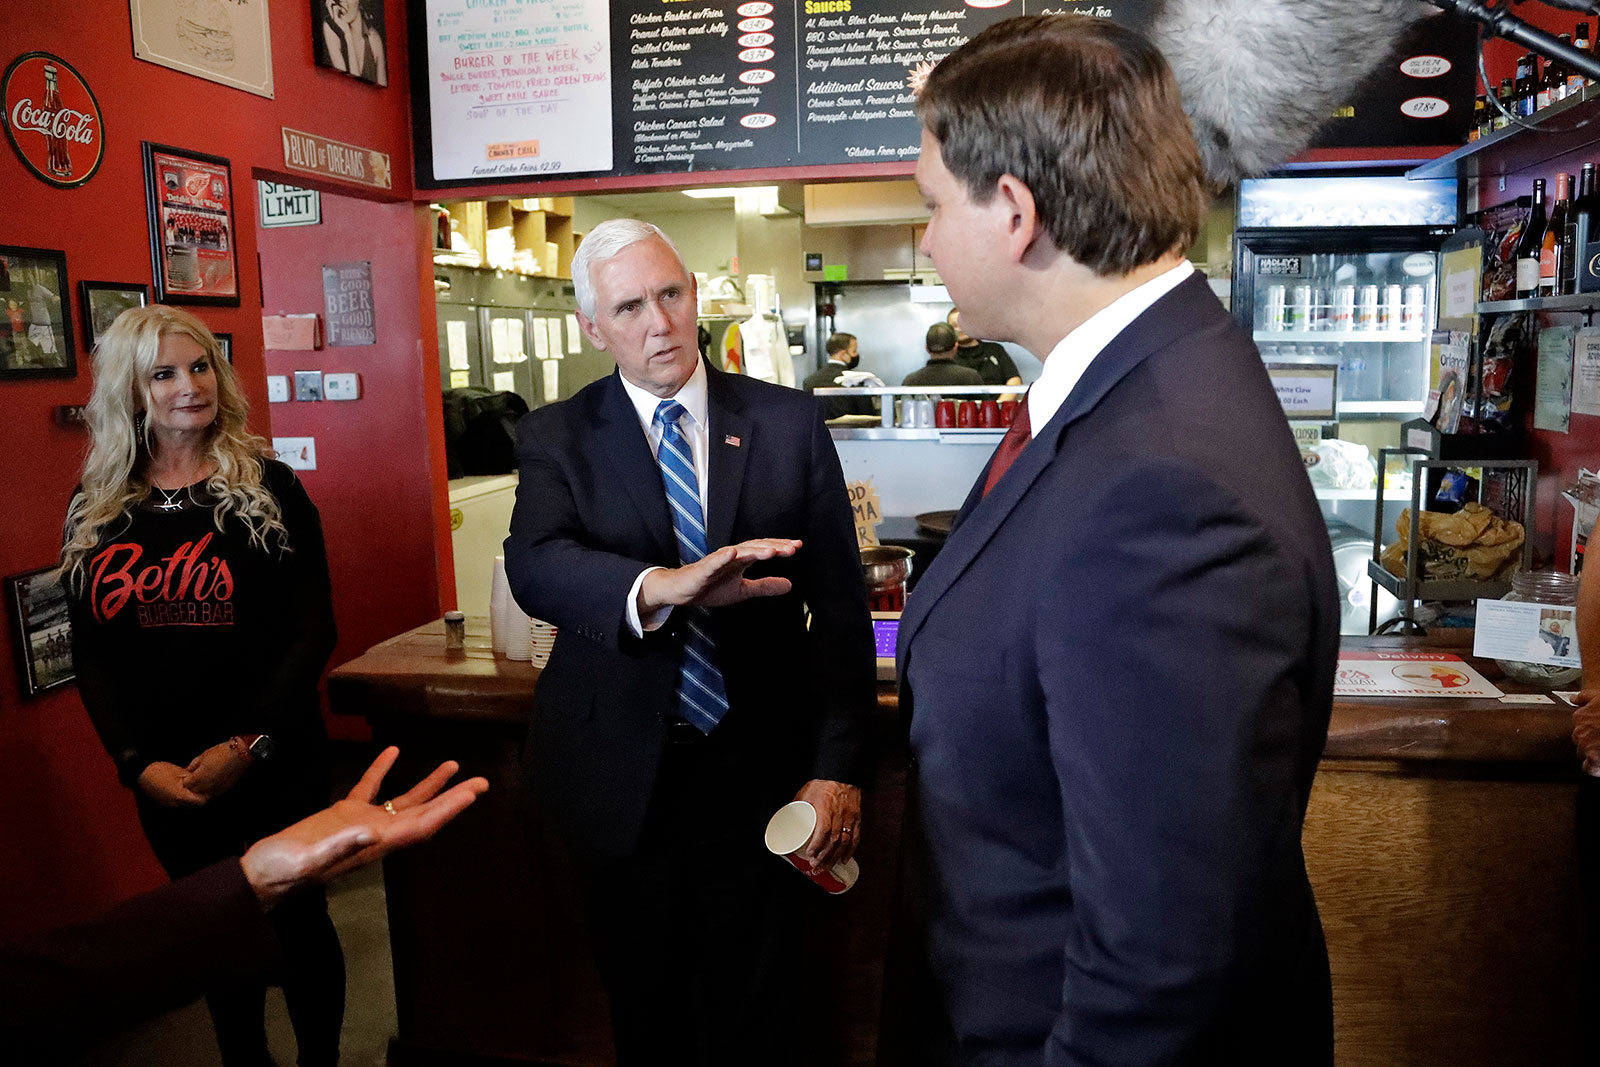 Vice President Mike Pence speaks toFlorida Gov. Ron DeSantis after ordering lunch at Beth's Burger Bar in Orlando, Florida, on Wednesday, May 20.